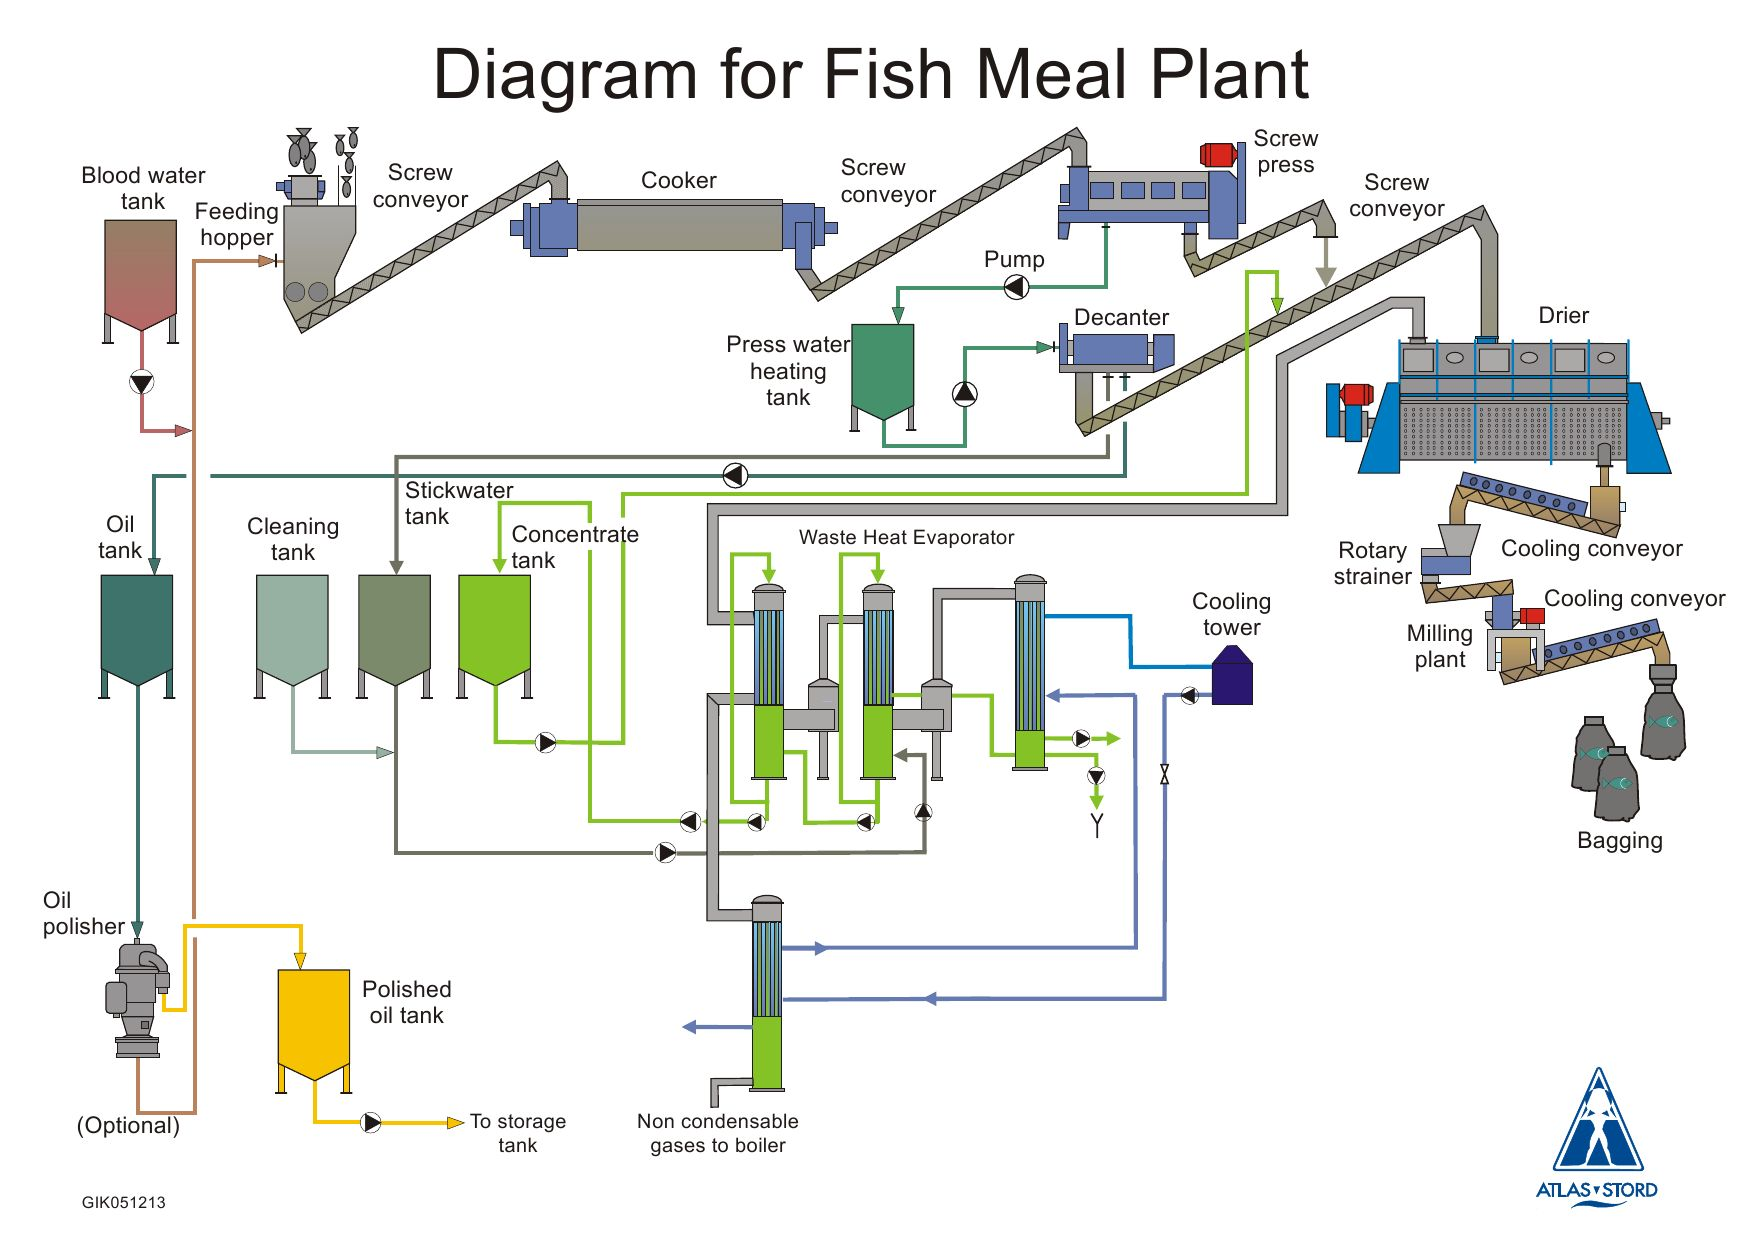 Plant Conveyor Flow Chart : Atlas stord diagram for fishmeal plant by telmo becerra